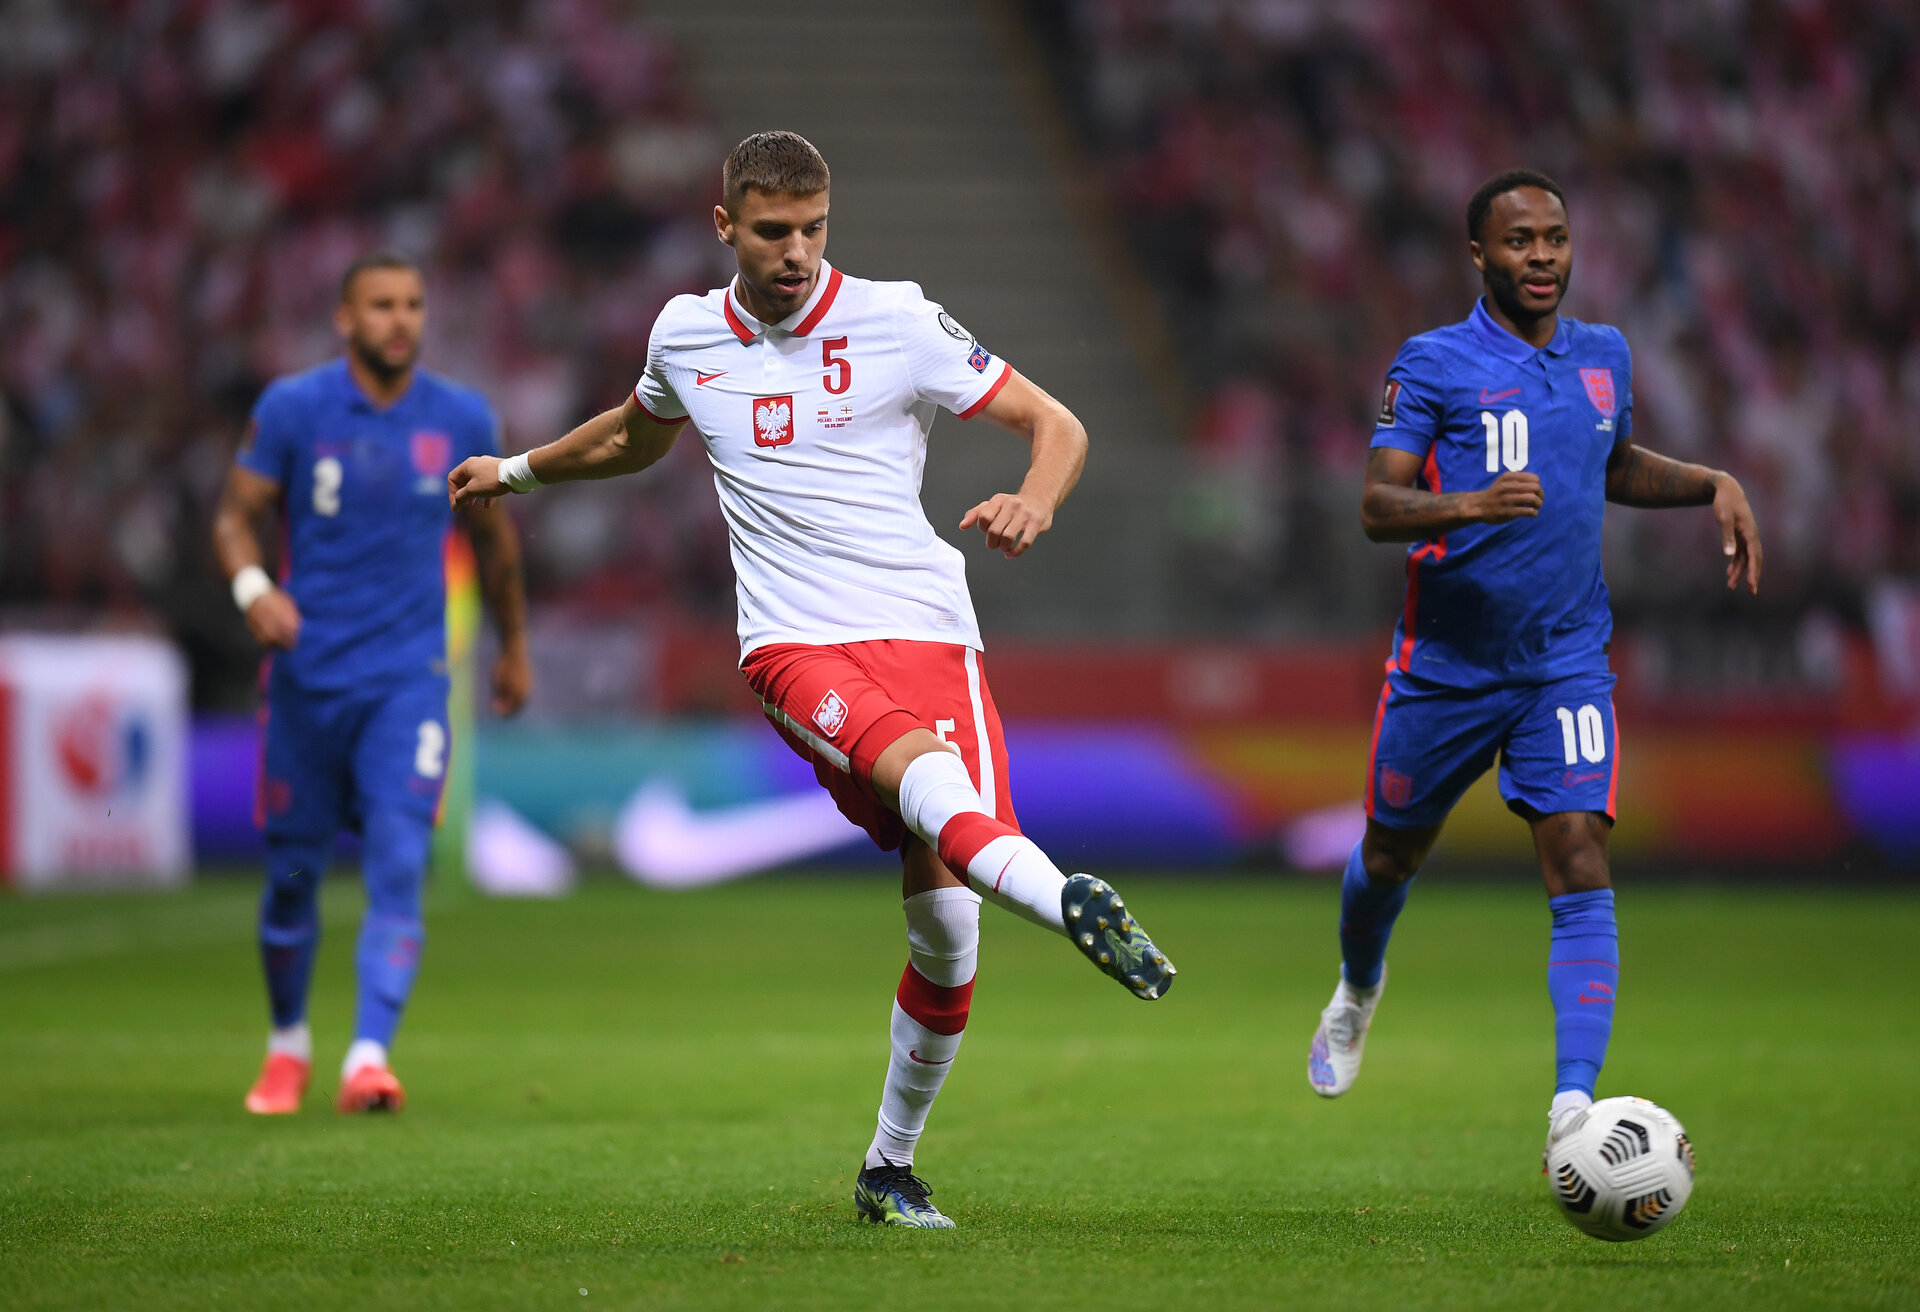 WARSAW, POLAND - SEPTEMBER 08:  Jan Bednarek of Poland passes the ball during the 2022 FIFA World Cup Qualifier match between Poland and England at Stadion Narodowy on September 08, 2021 in Warsaw, Poland. (Photo by Michael Regan/Getty Images)